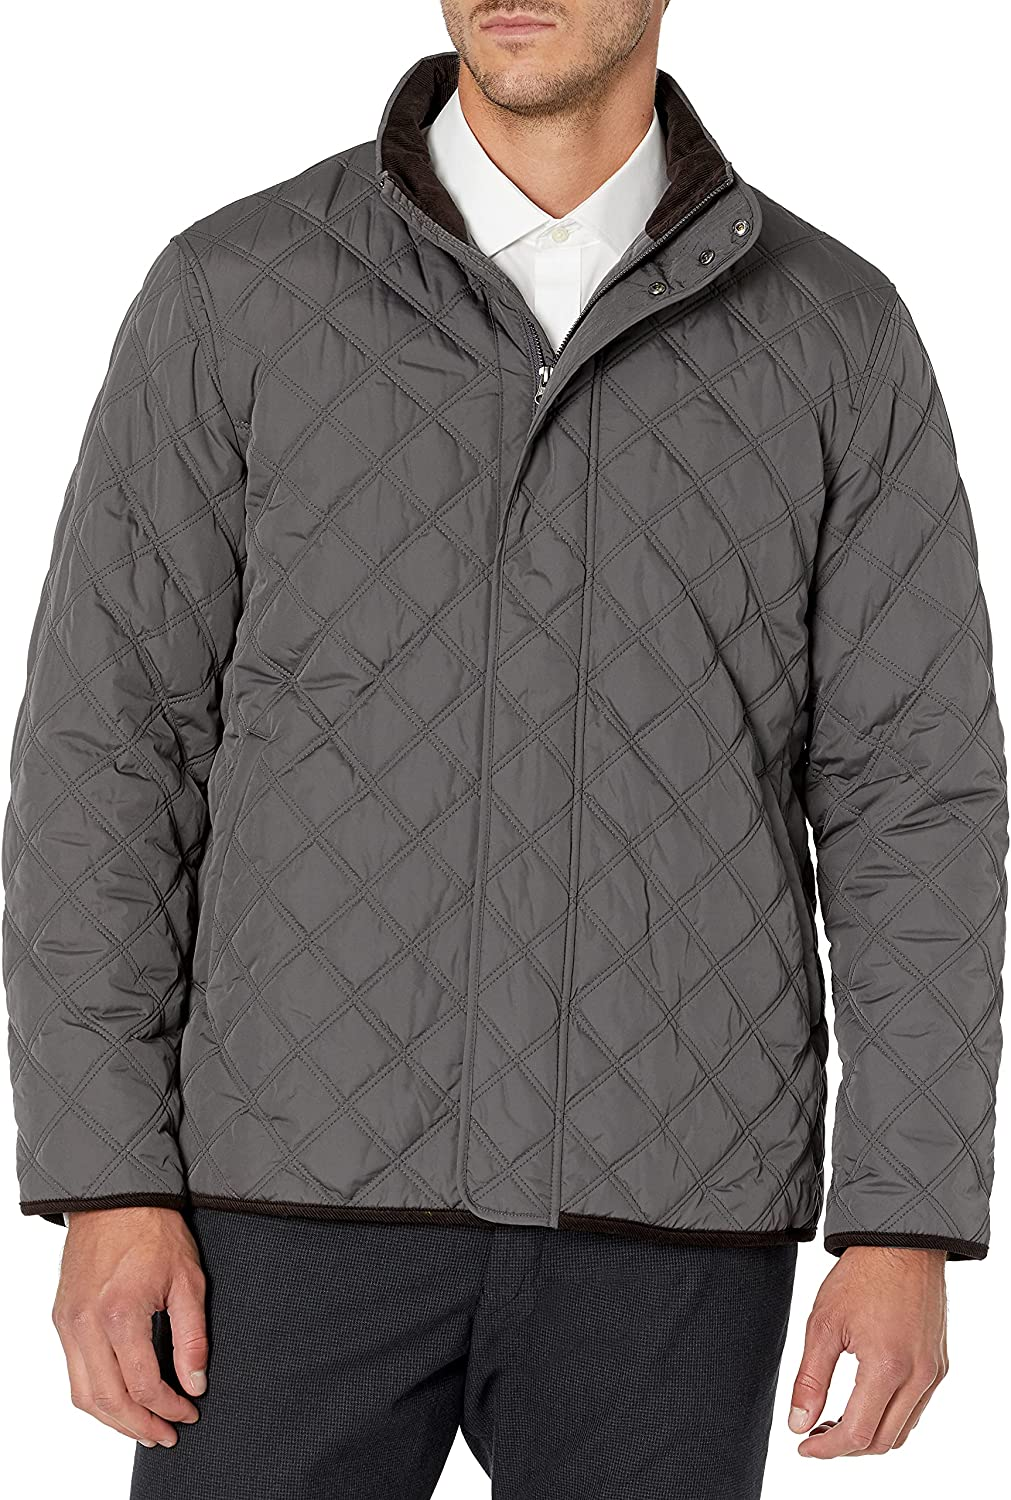 Buttoned Down Men's Water Quilted Repellant Coat Car Fees free!! Ranking TOP10